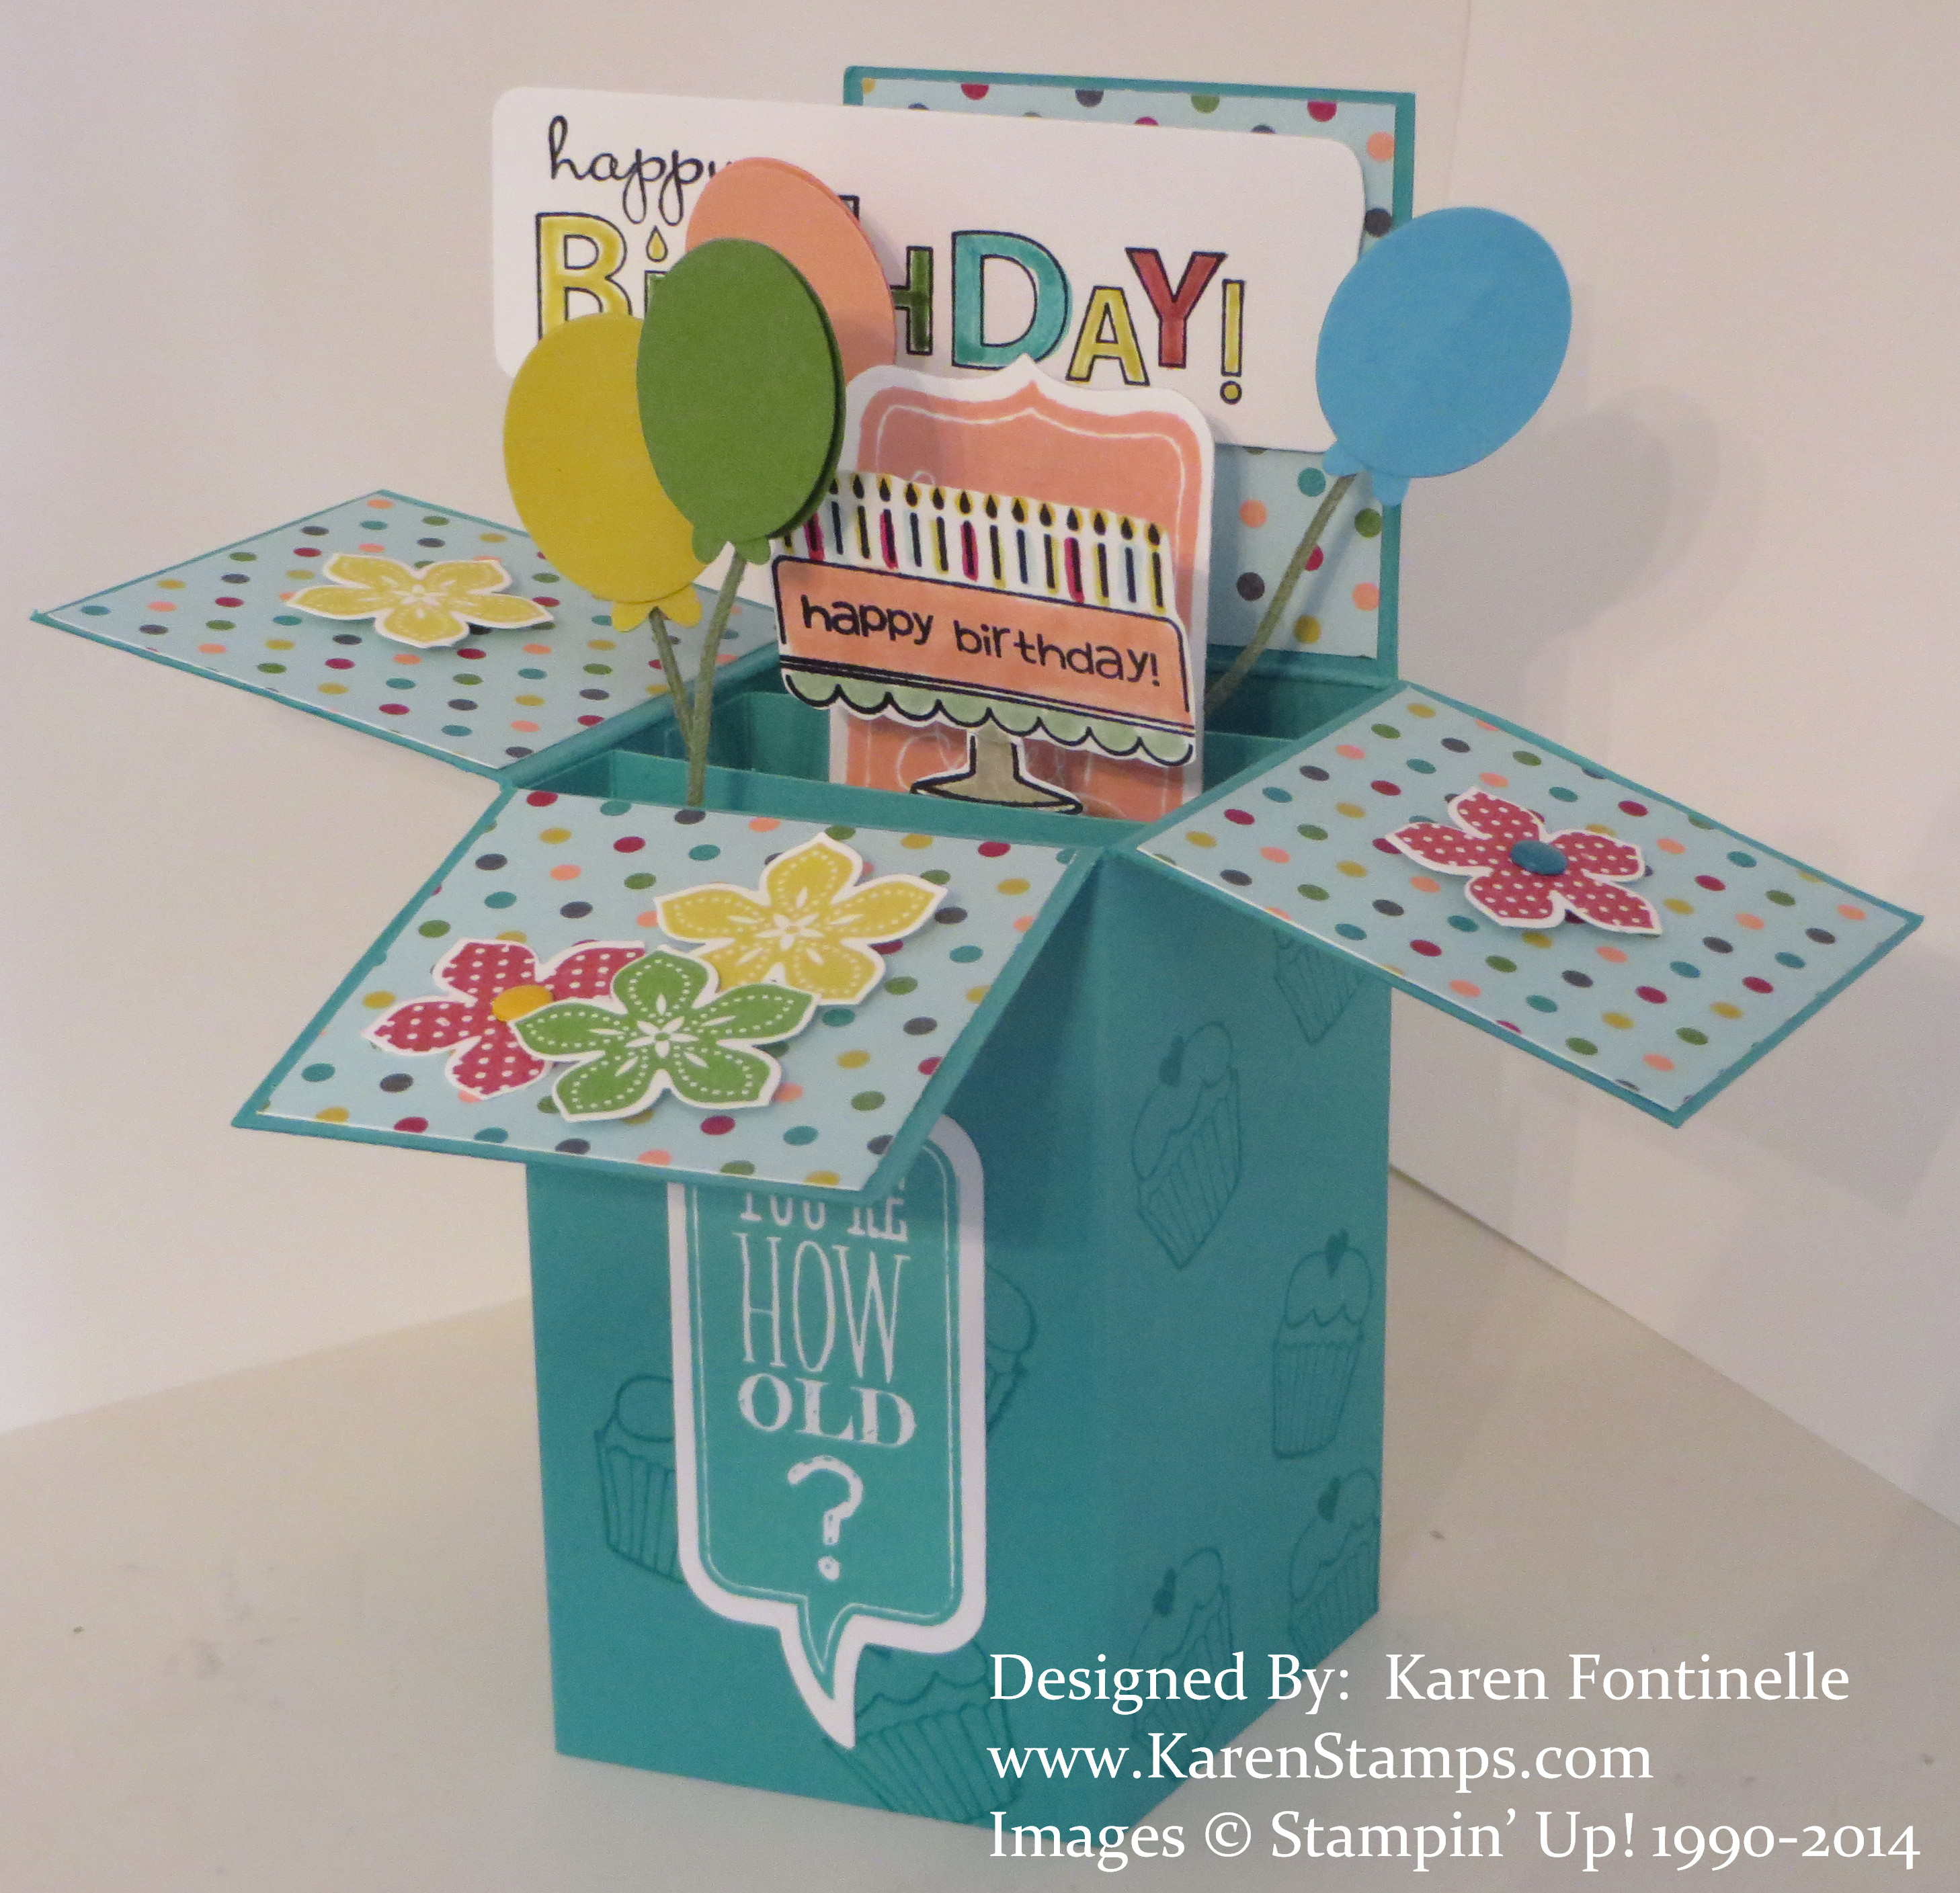 Birthday Card With Box Craftbnb – Birthday Cards in a Box